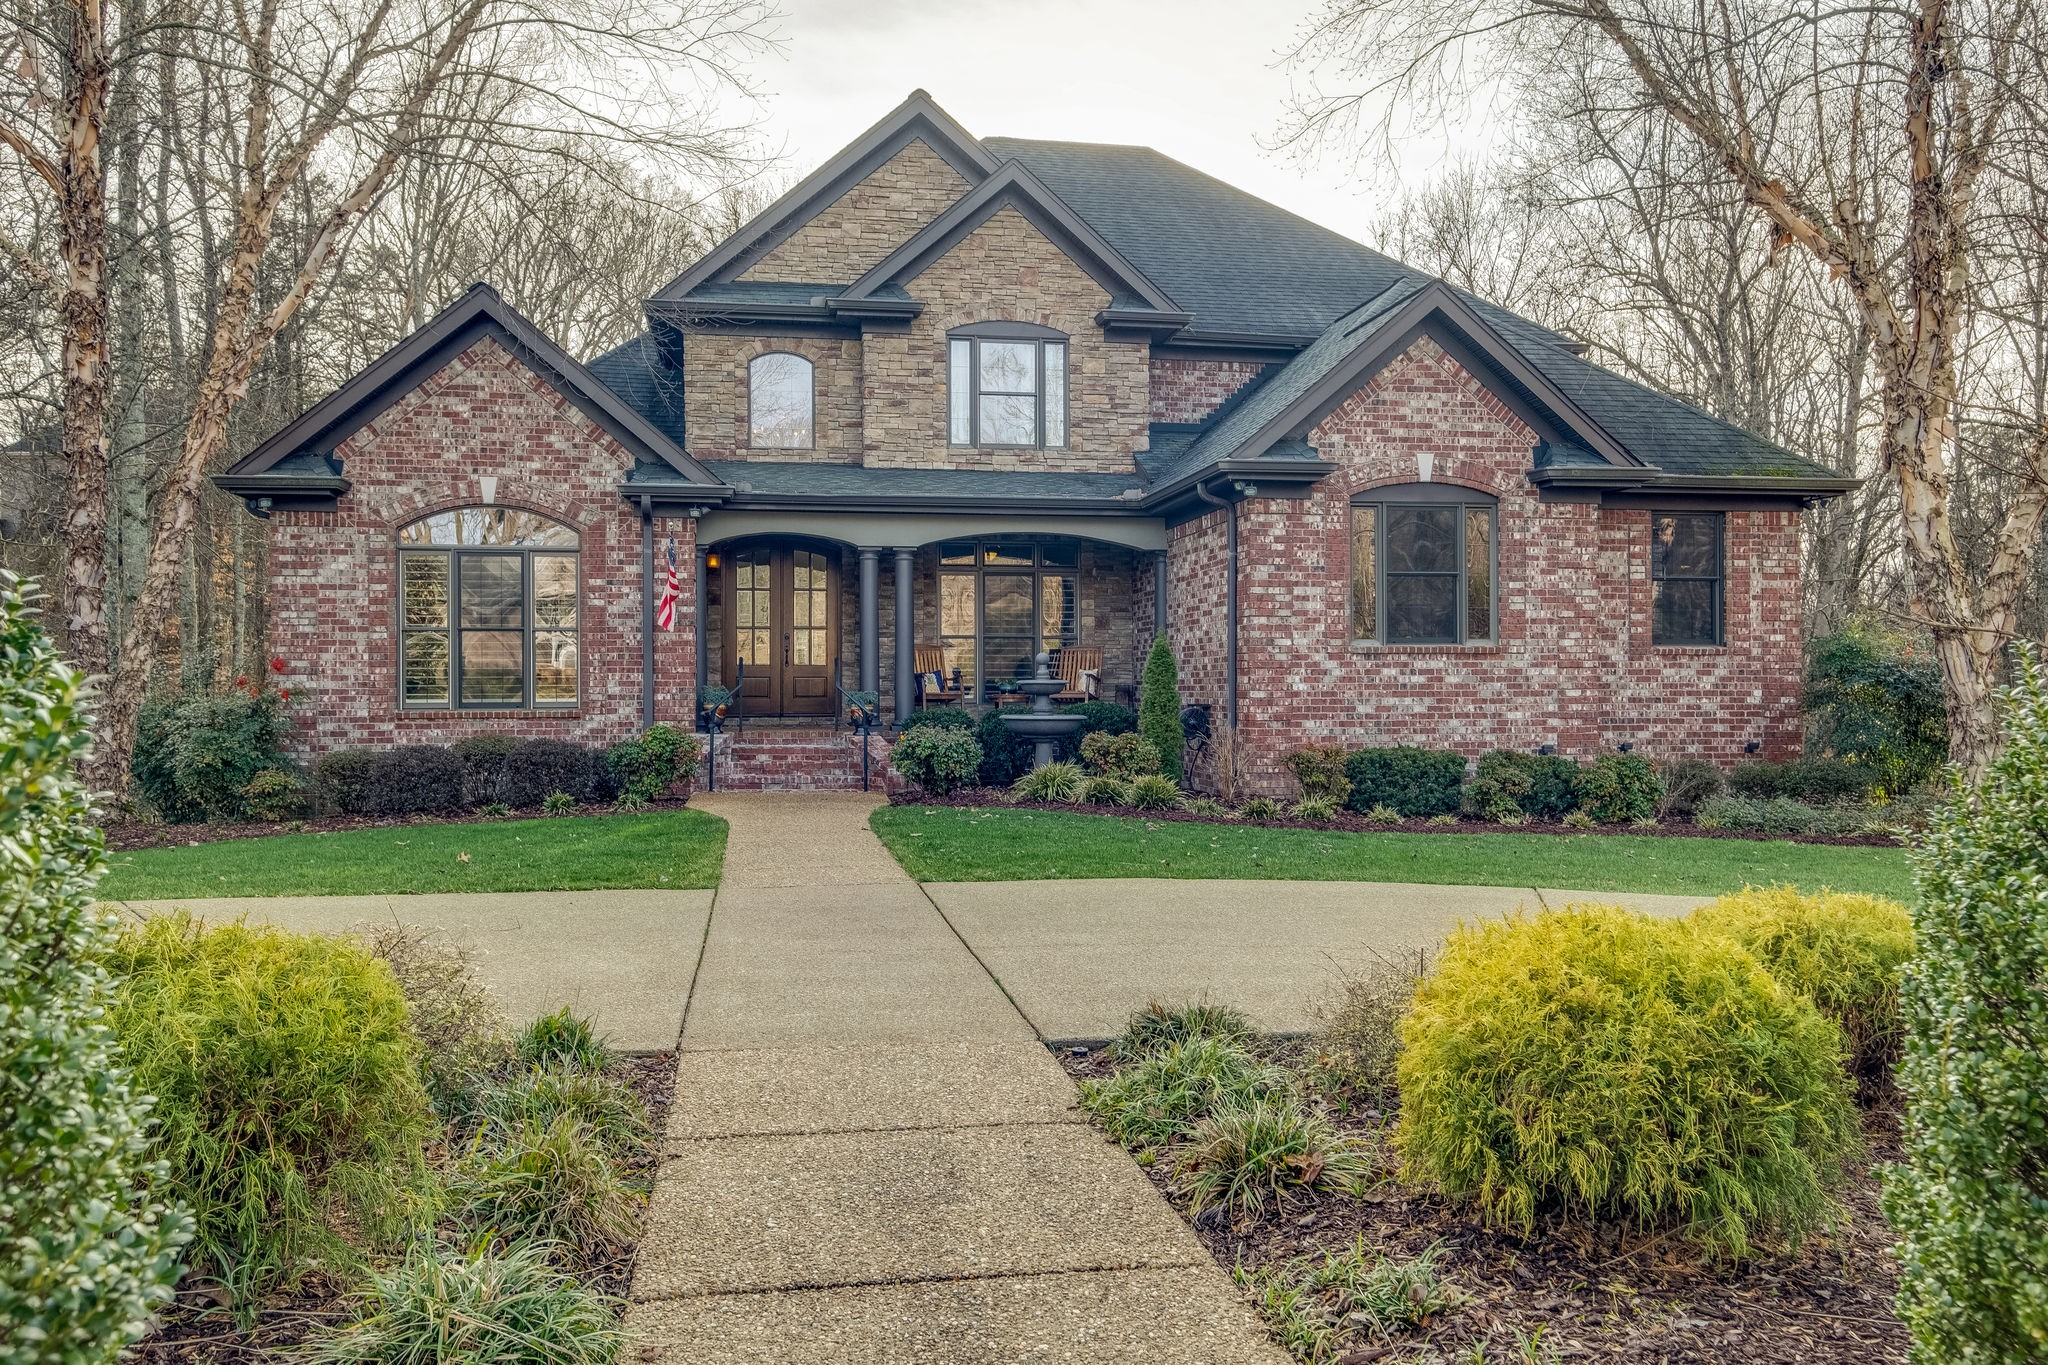 $897,400 - 4Br/5Ba -  for Sale in Hickory Isles 3, Mount Juliet